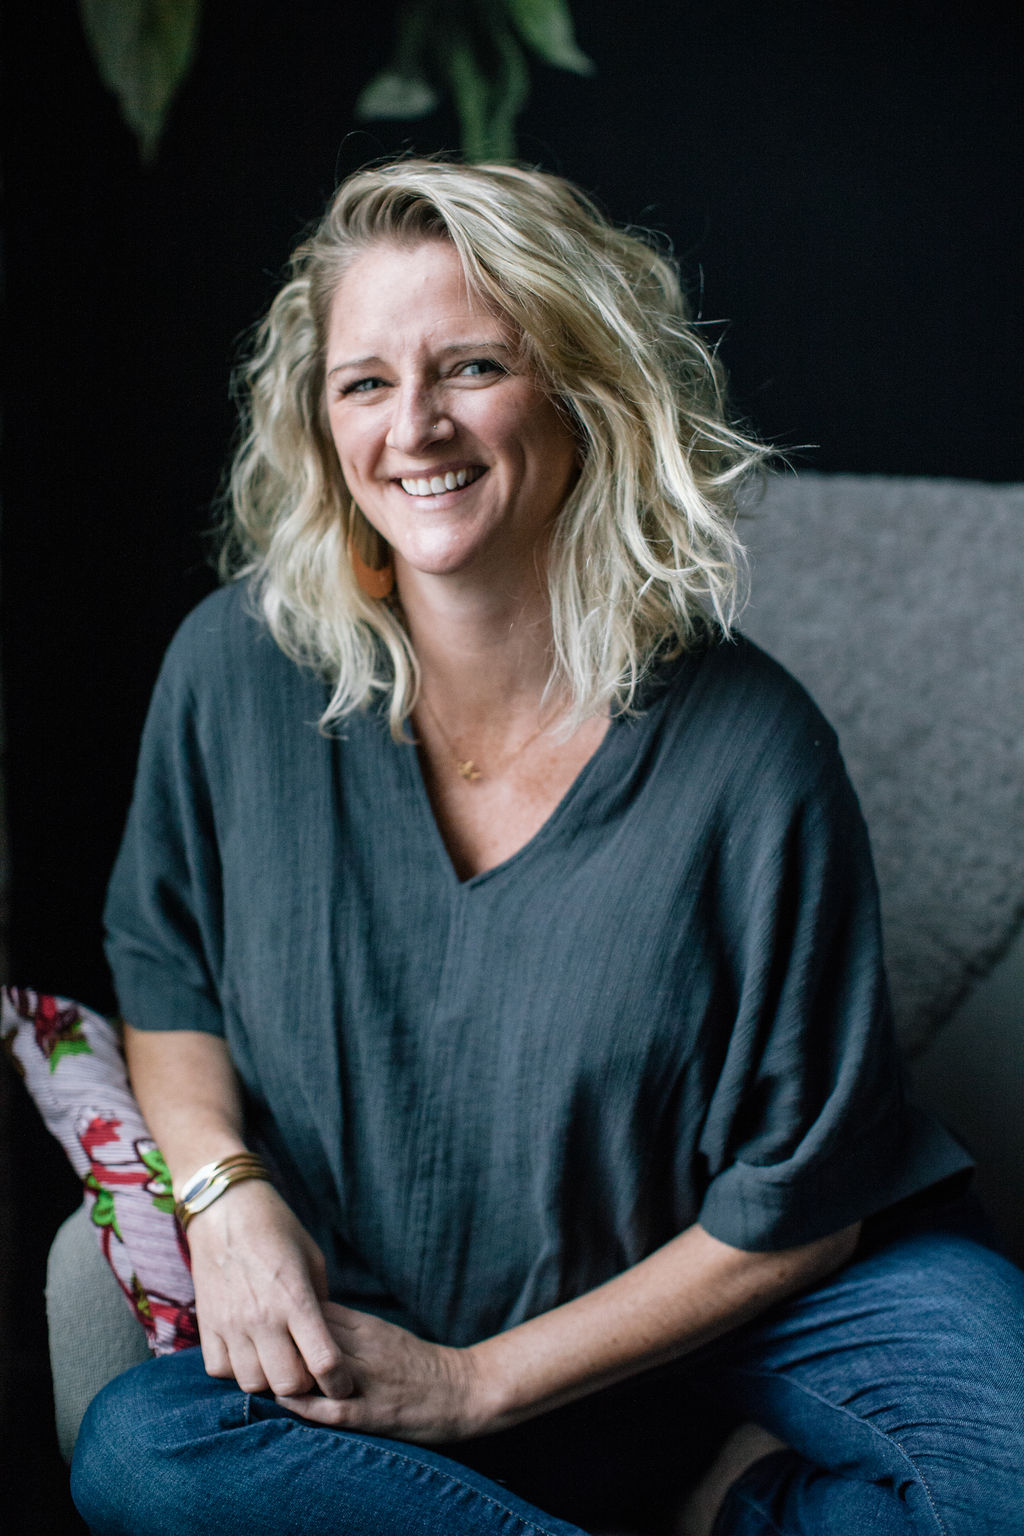 Sarah Longacre - With over 18 years as a birth doula, coupled with 14 years as a prenatal yoga instructor, Sarah is passionate about breath and movement in birth. She is the founder and owner of Blooma and brings a warm, loving presence to your birth.